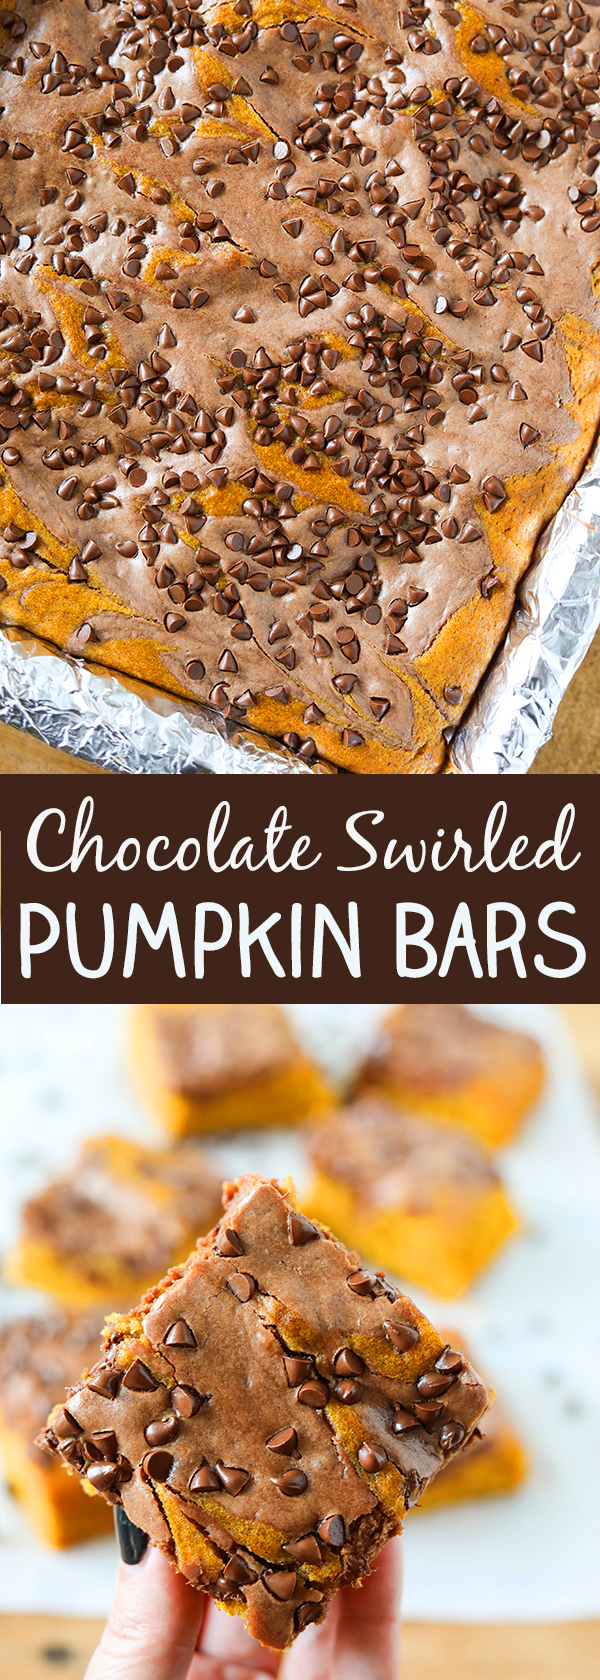 Pumpkin Bars with Chocolate Swirl and Chocolate Chips - these are so delicious!